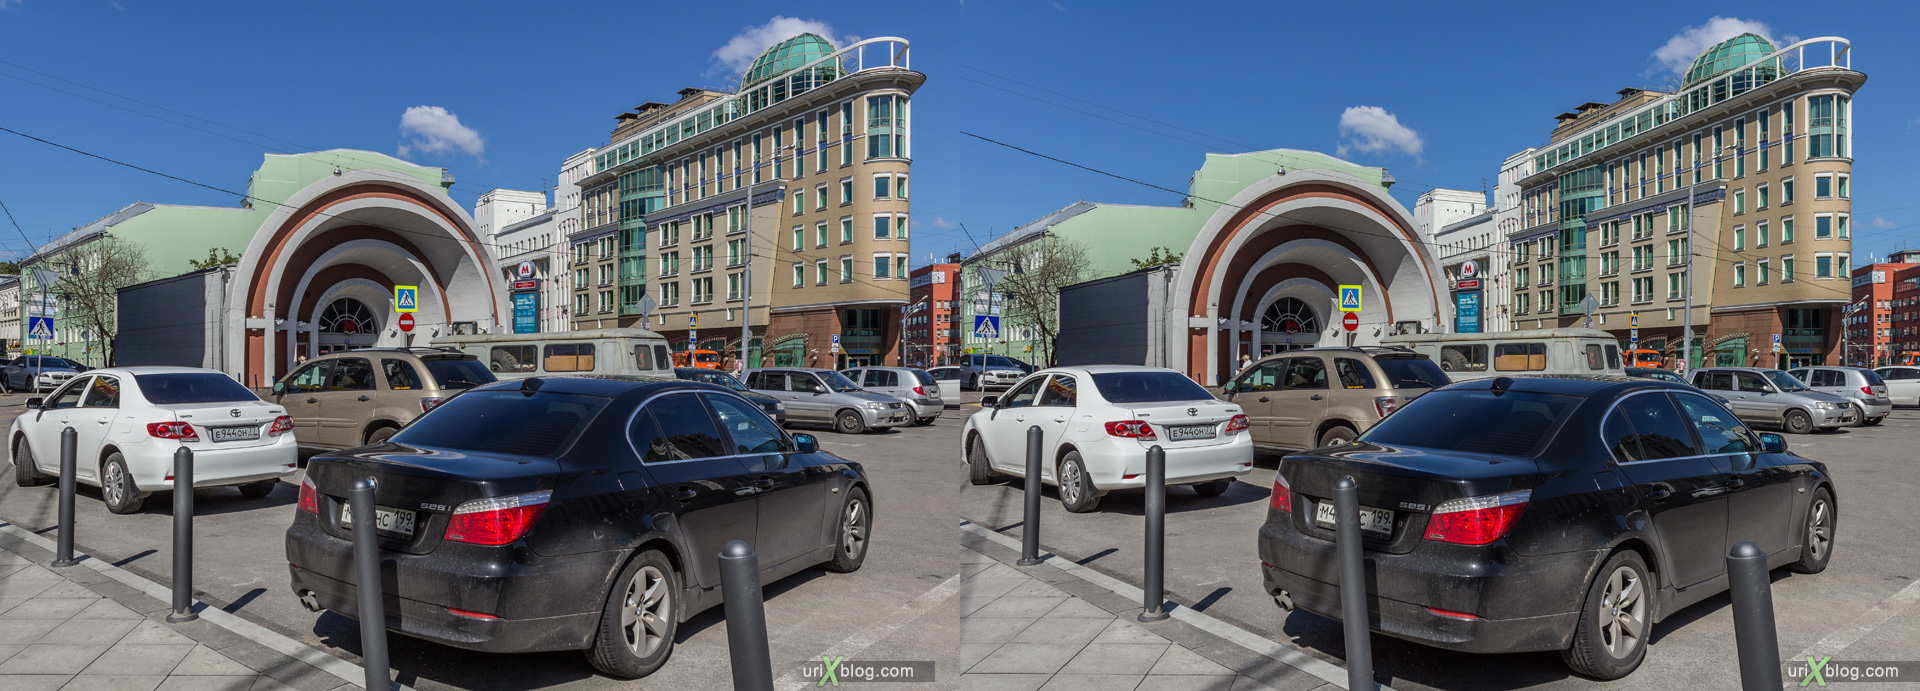 2014, Red Gates, Krasnye vorota, metro station, Moscow, Russia, sunny, blue sky, cars, square, 3D, stereo pair, cross-eyed, crossview, cross view stereo pair, stereoscopic